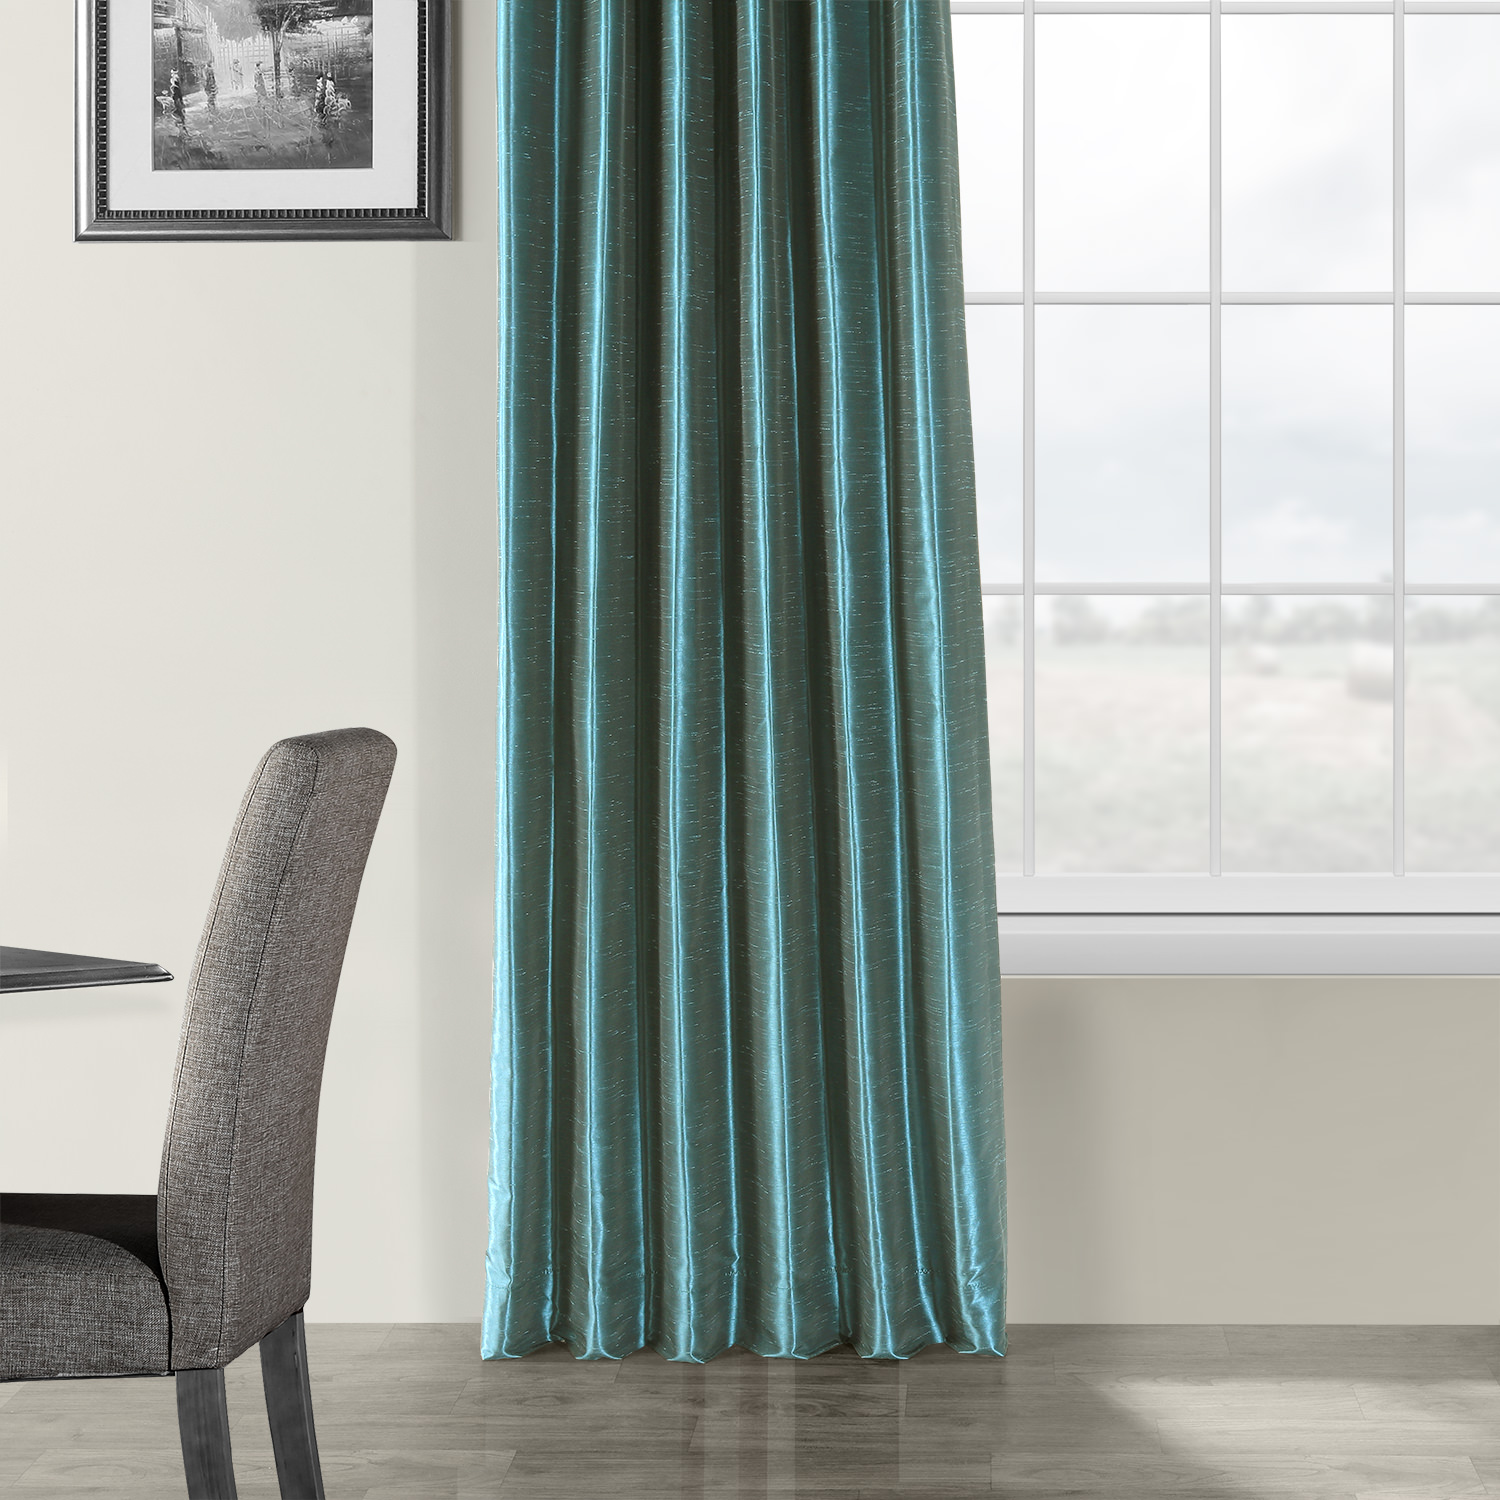 Peacock Vintage Textured Faux Dupioni Silk Curtain